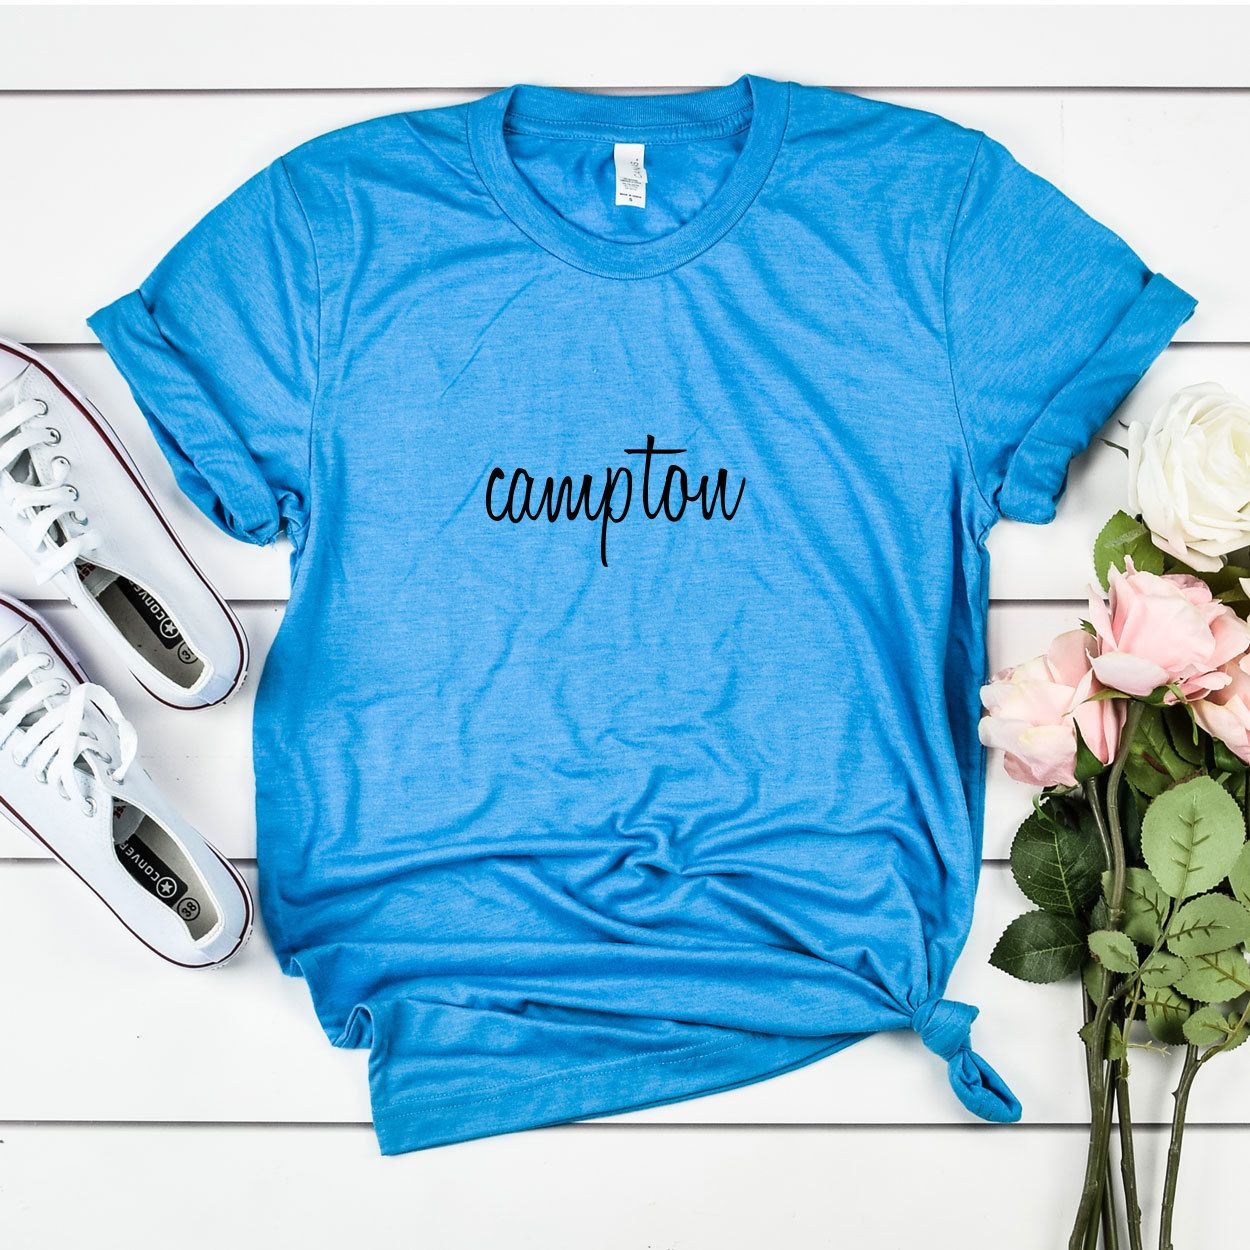 0ebb8f21 Campton Womens T-Shirt, Unique T-Shirts, made to order just for you. Get 20%  off your order today.